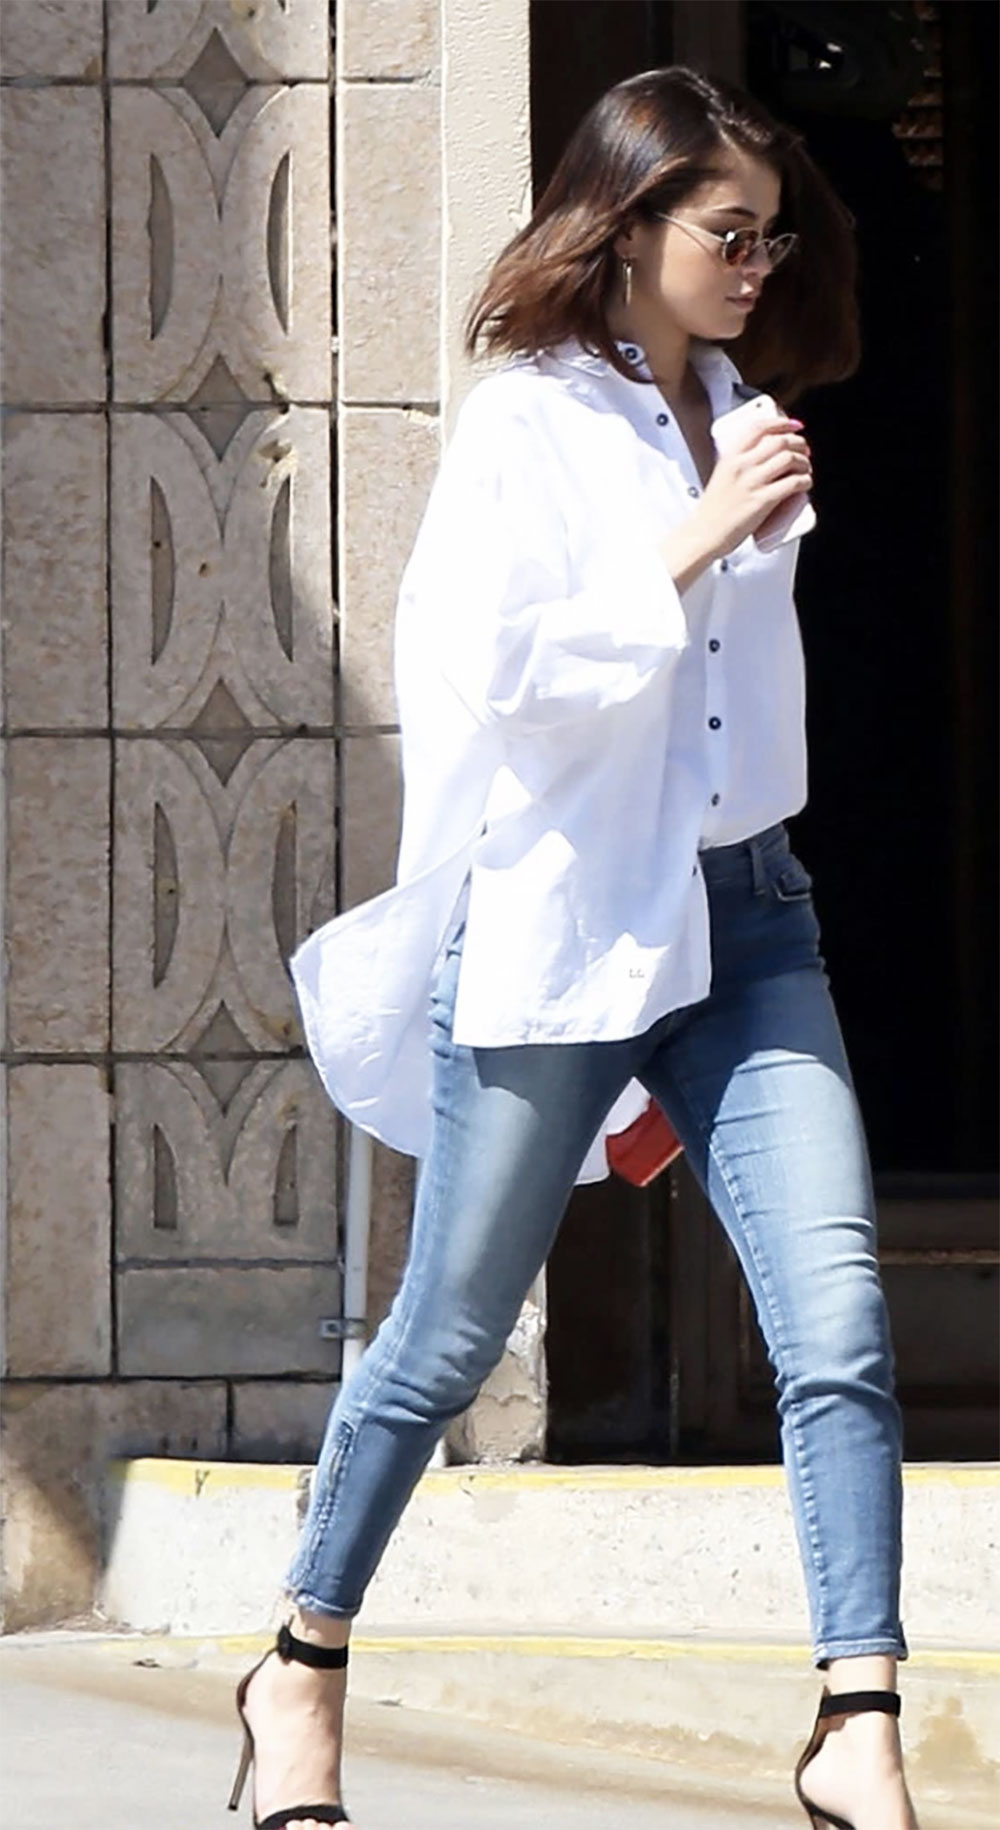 selena gomez oversize shirt outfit